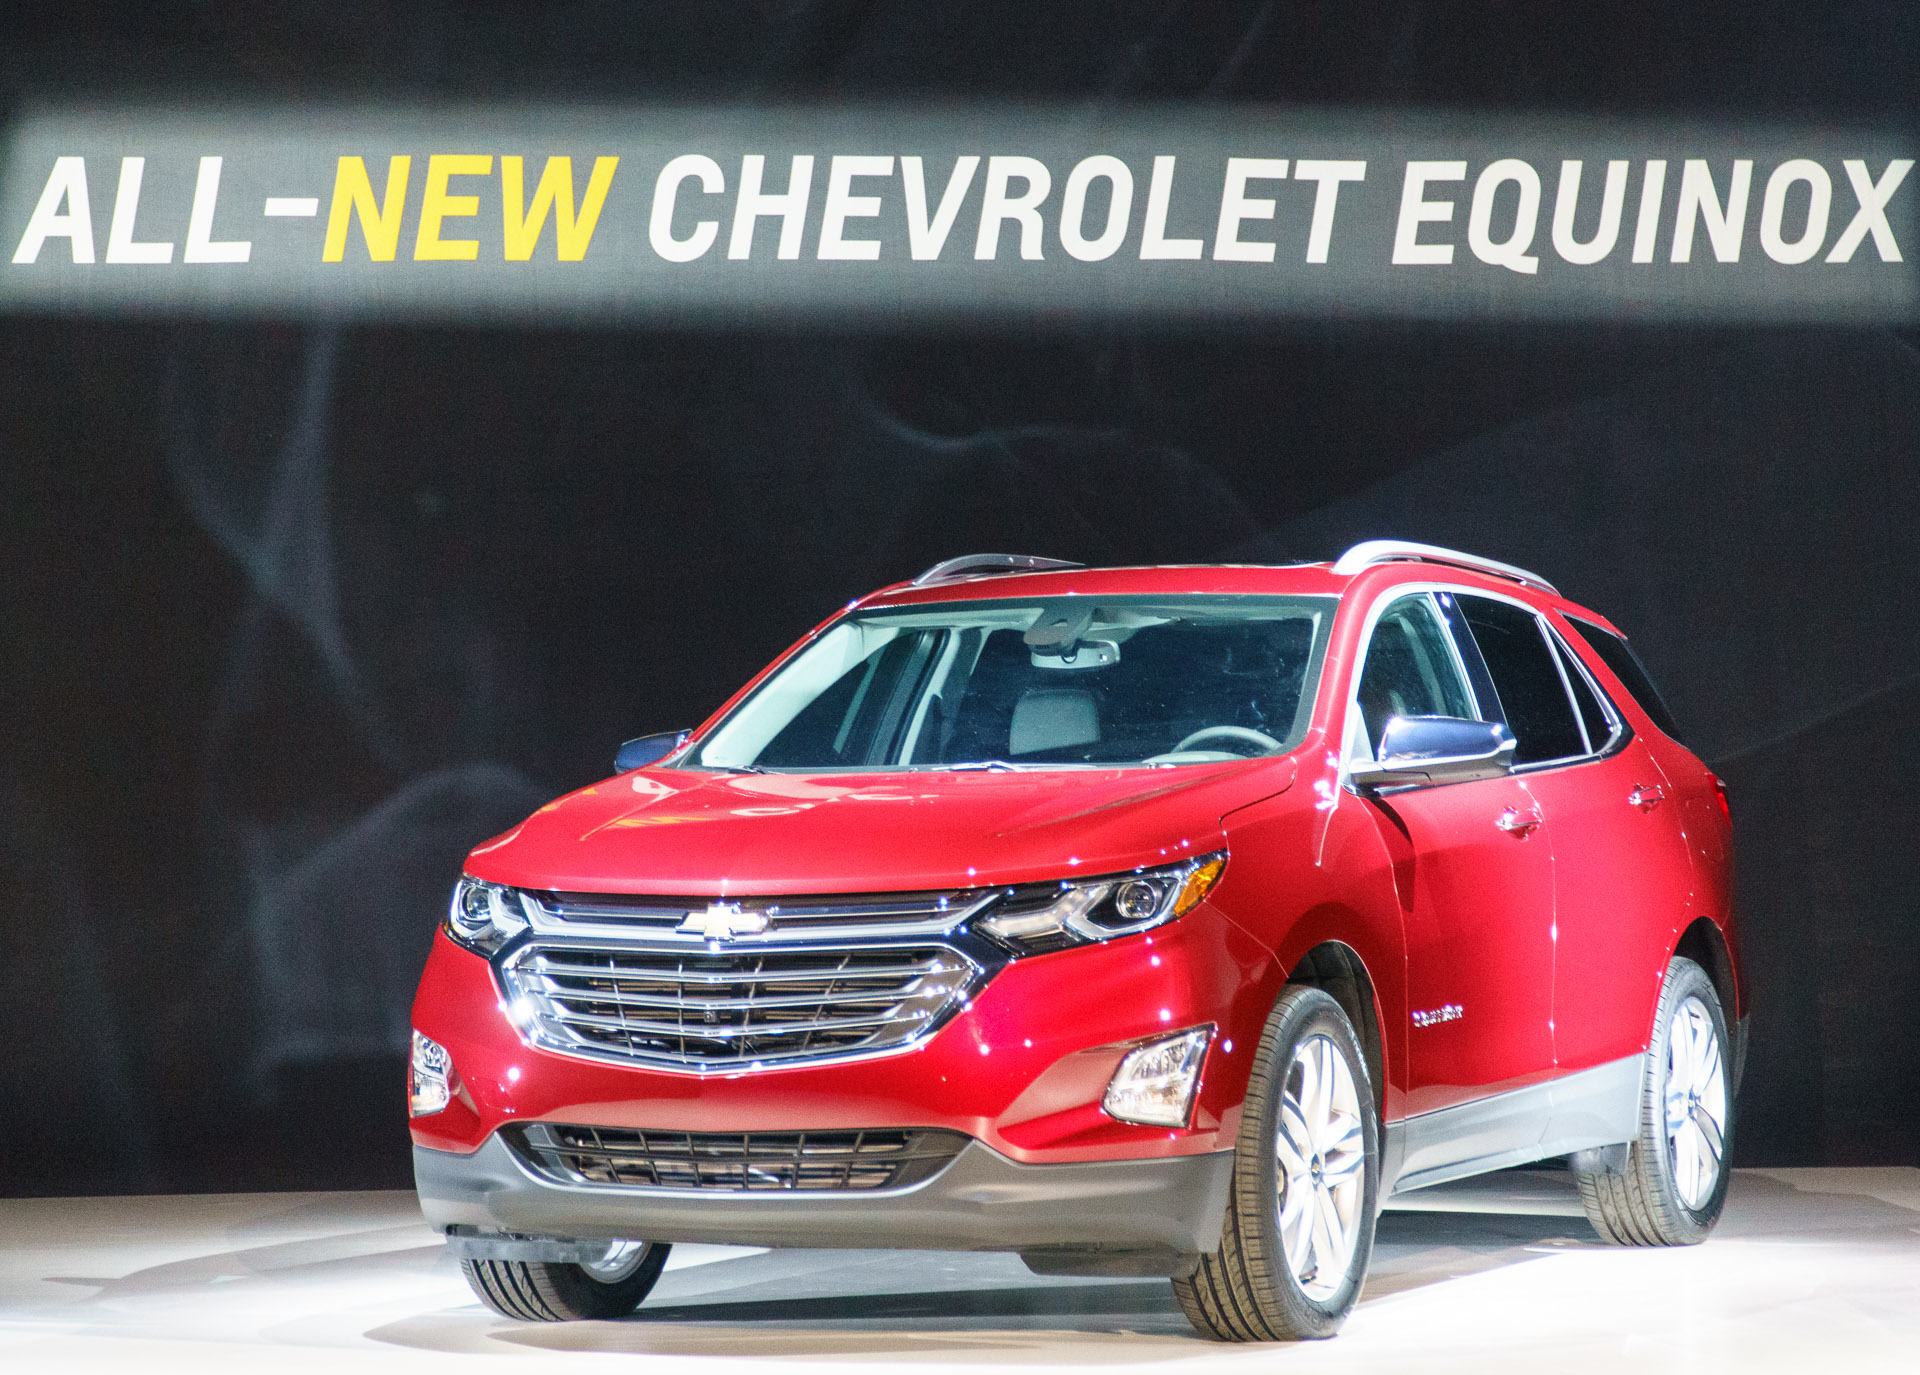 2018 Chevrolet Equinox: Bigger on the Inside